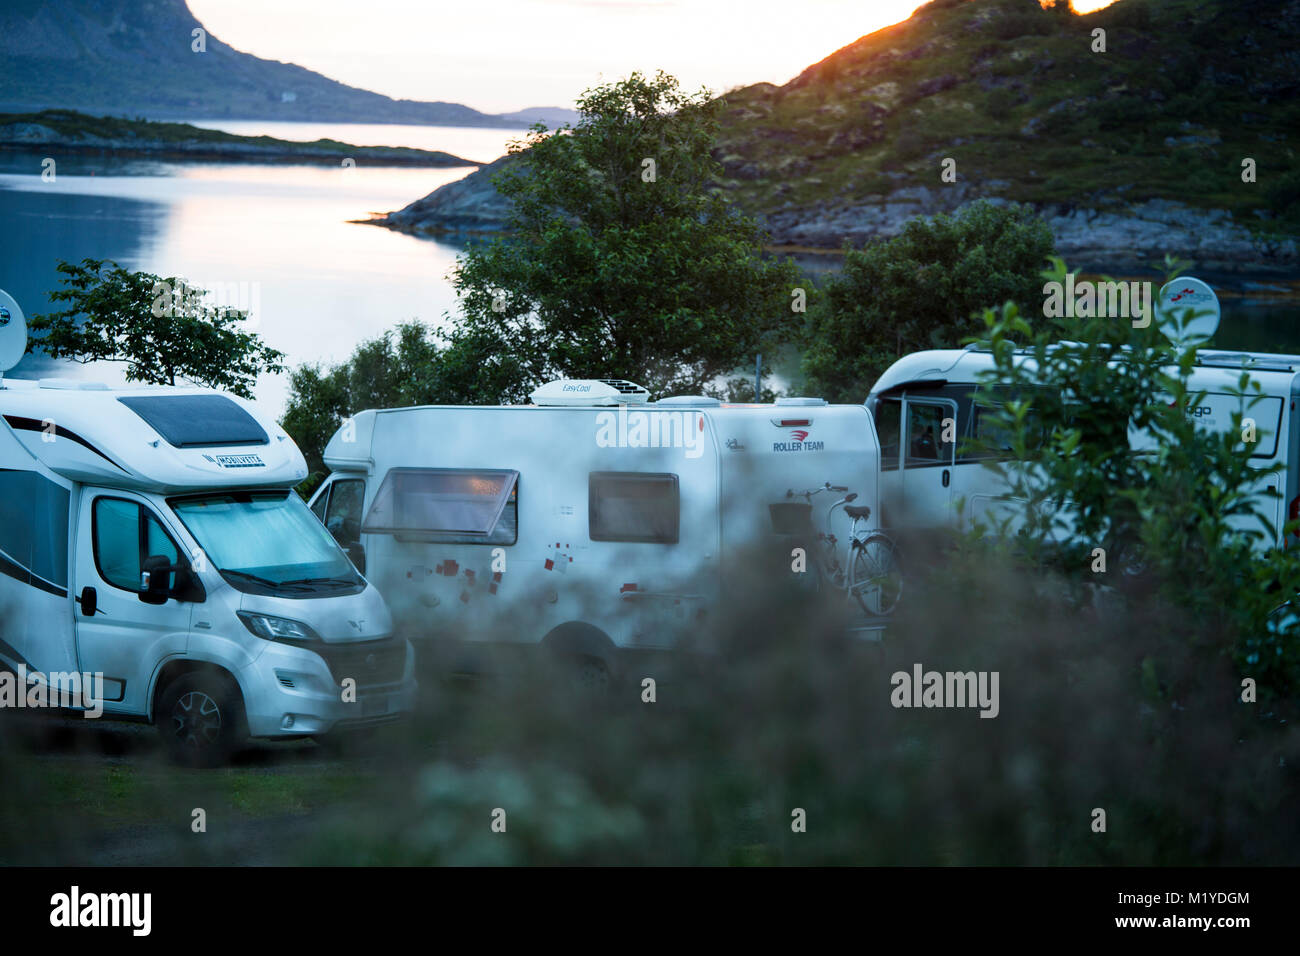 Three RVs parked overnight nearby the sea or a lake. - Stock Image